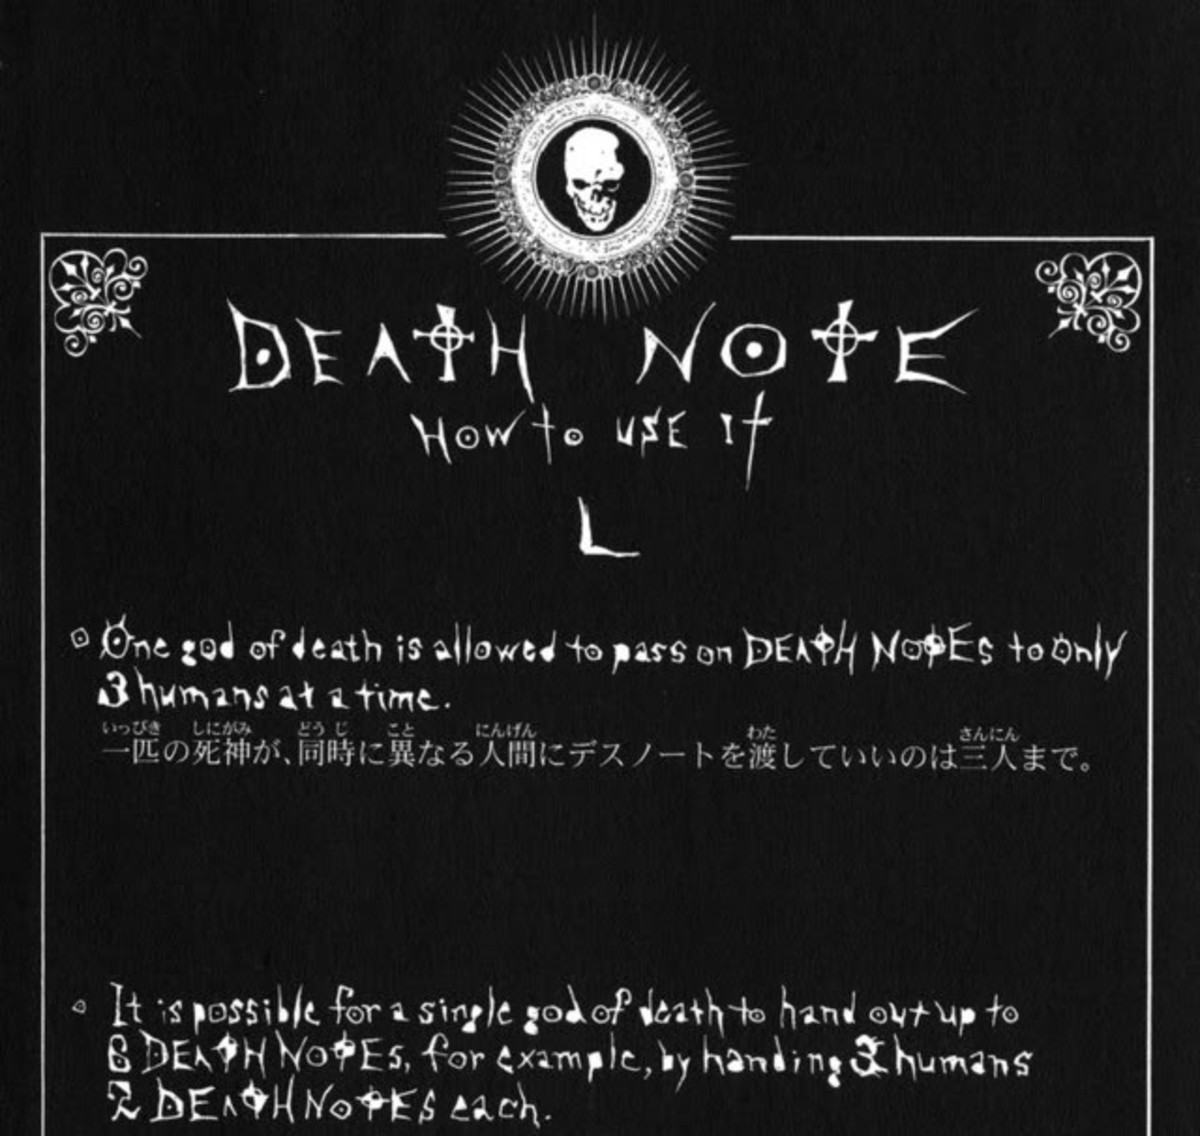 Only six humans can own Death Notes at once